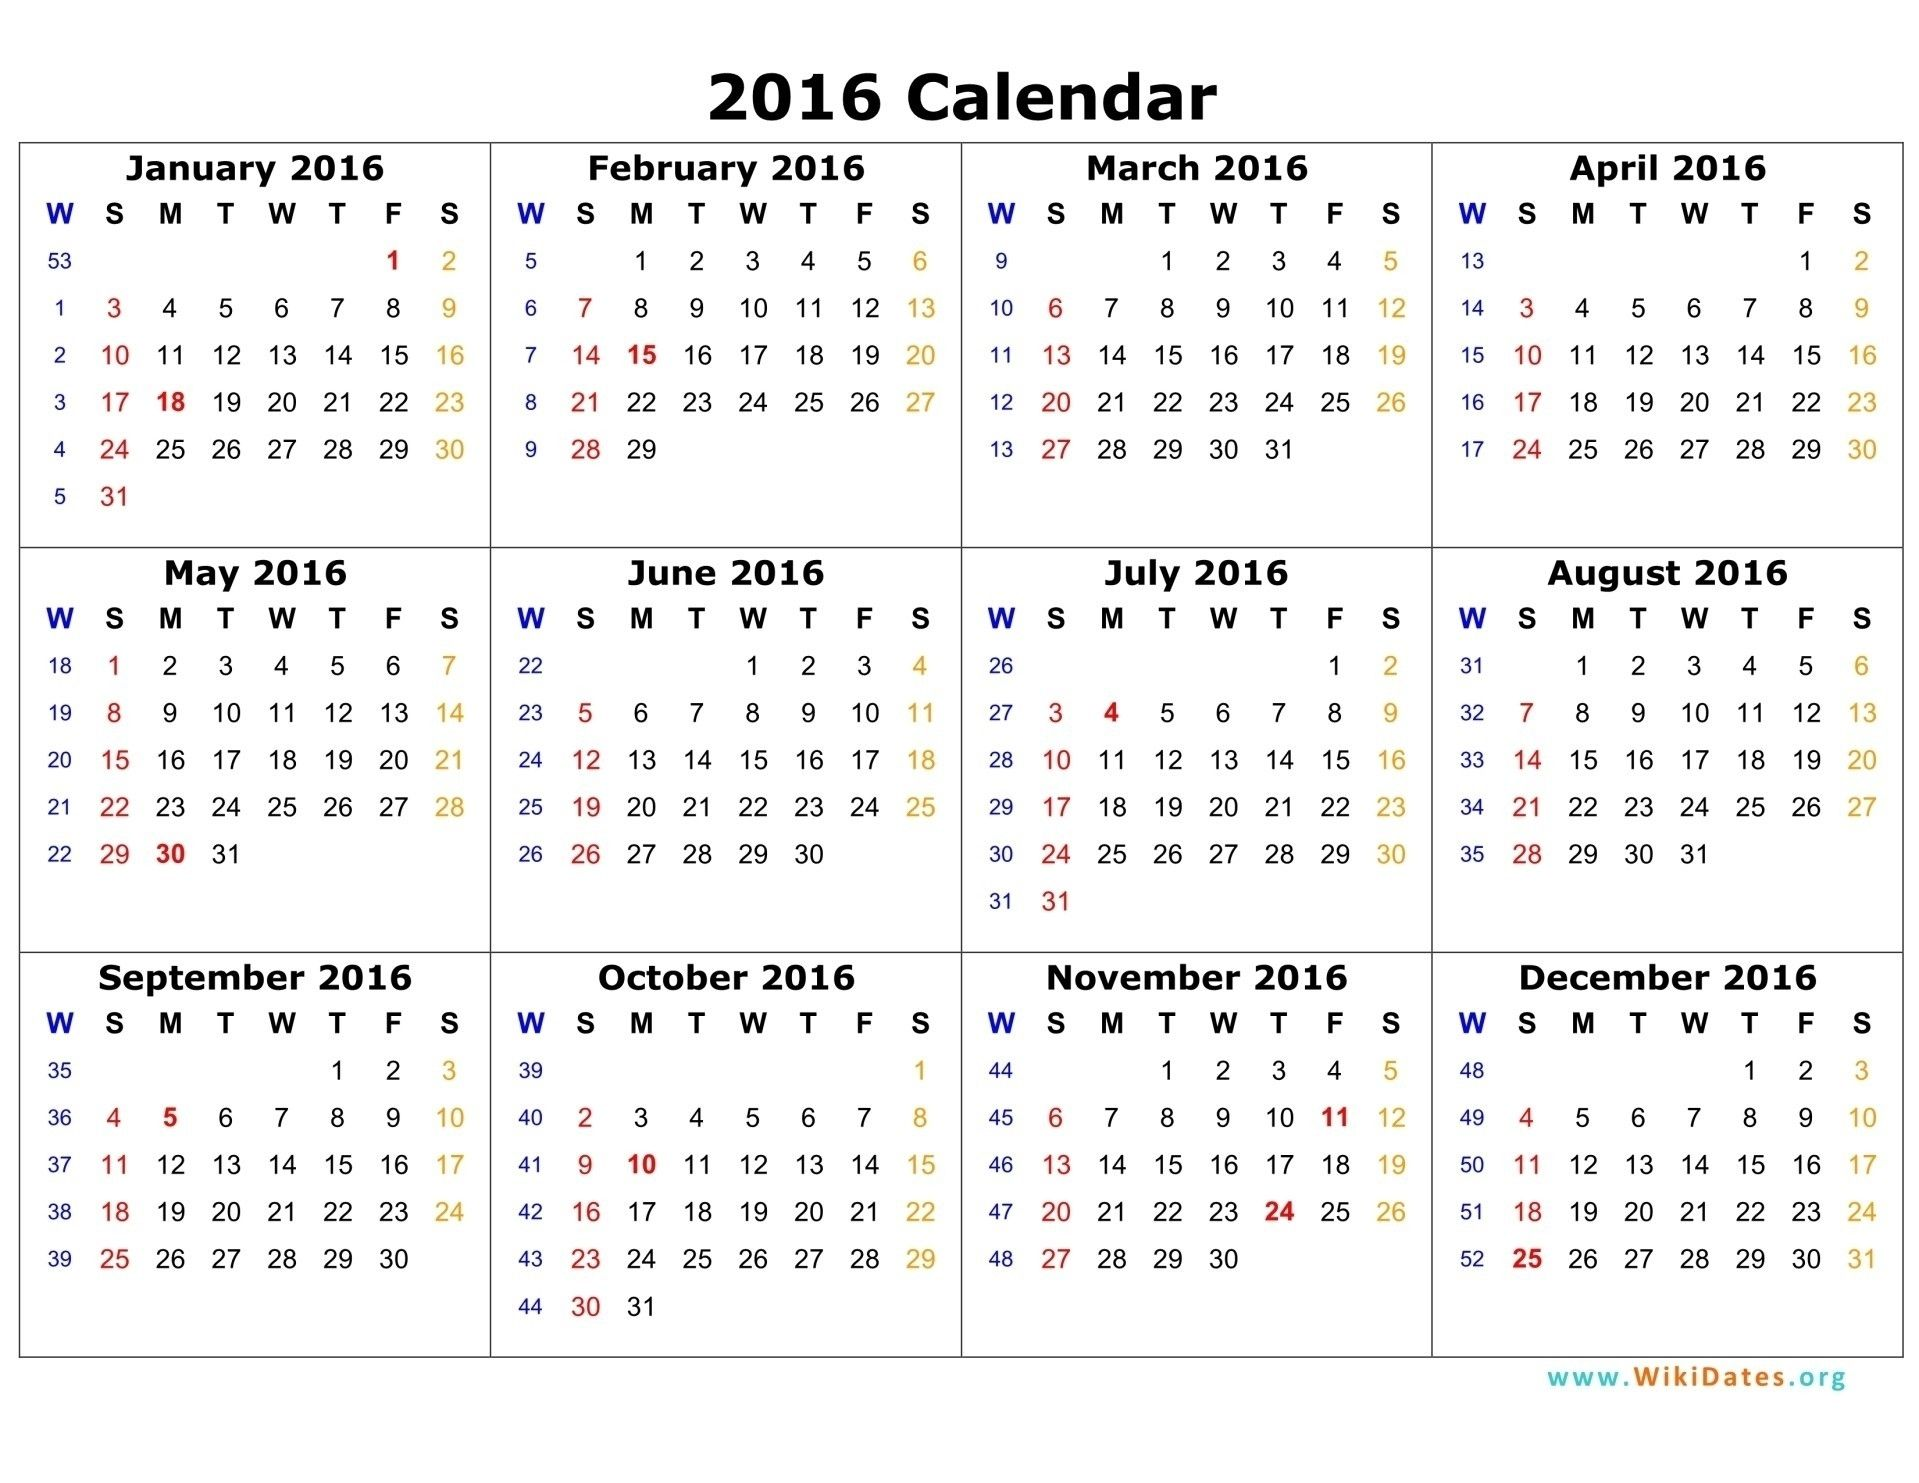 Time And Date Calendar 2022.Time And Date Calendar 2021 Puja Date Time Free Puja Schedule 1427 Bengali Calendar 2020 2021 Bengali Calenda Calendar Calendar 2020 Bengali Free Online Calendar For 2021 Year